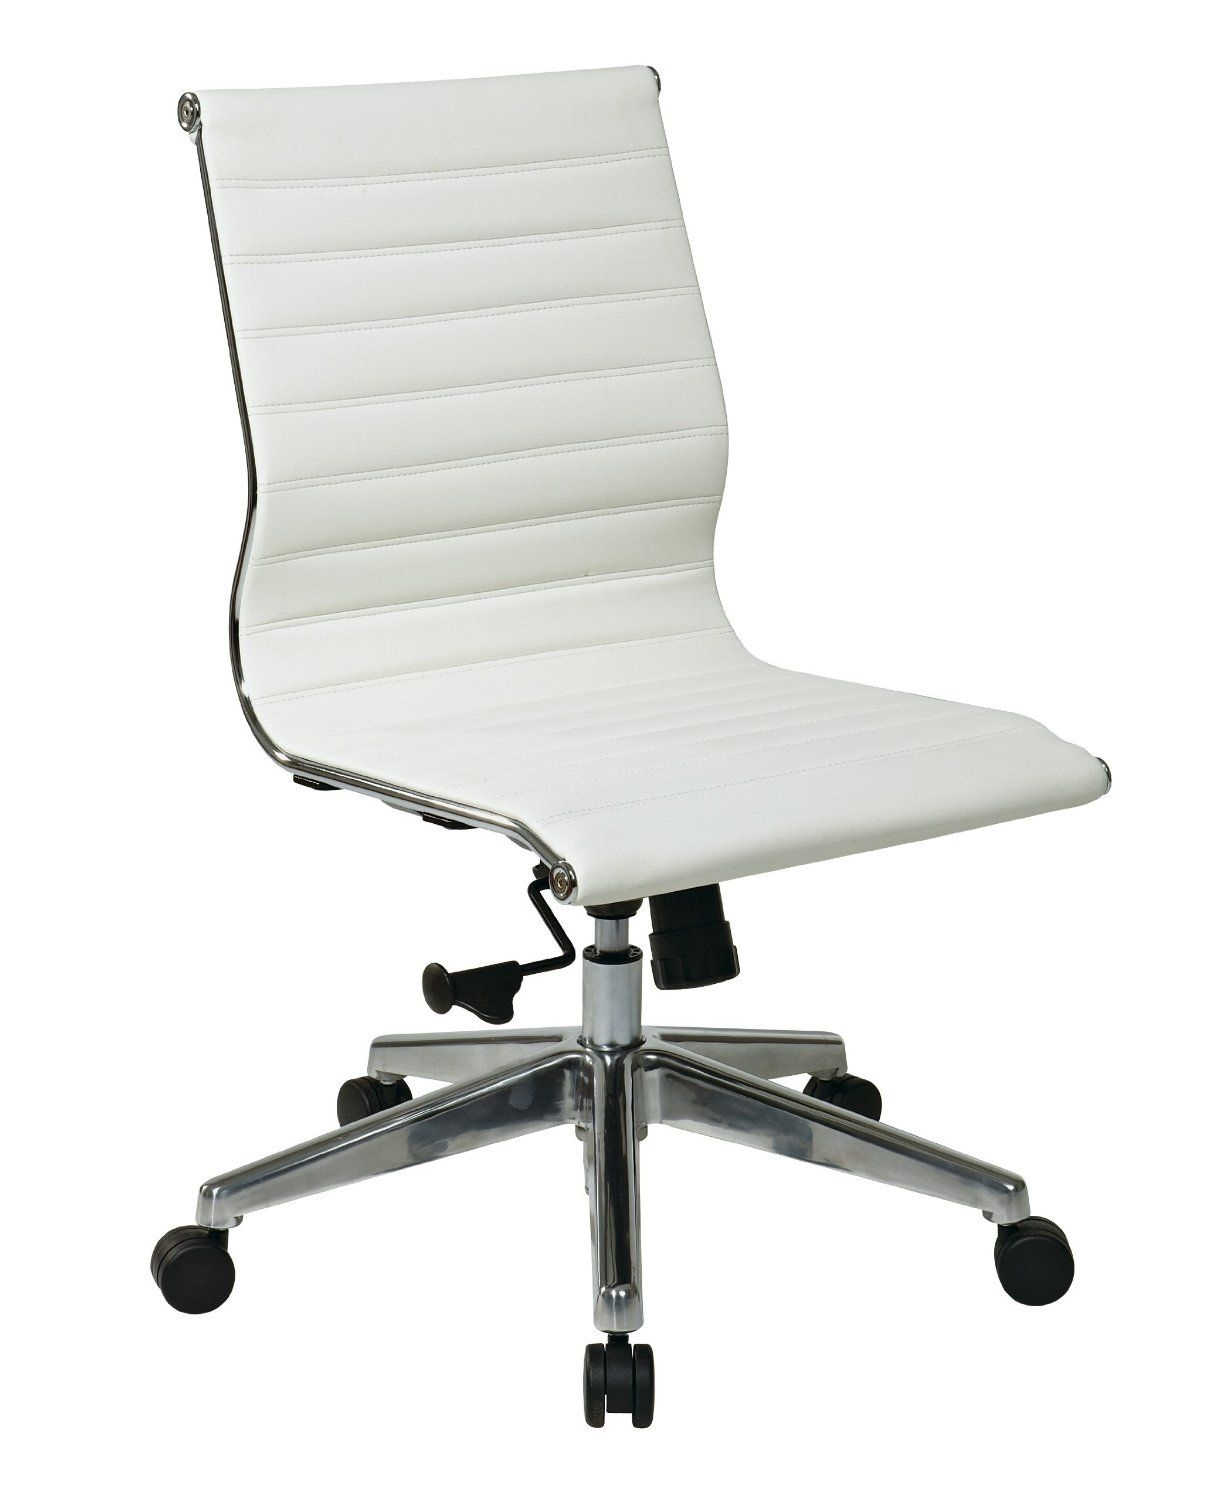 Mid-Back Eco Leather Office Chair  sc 1 st  Foter & White Leather Desk Chairs - Ideas on Foter